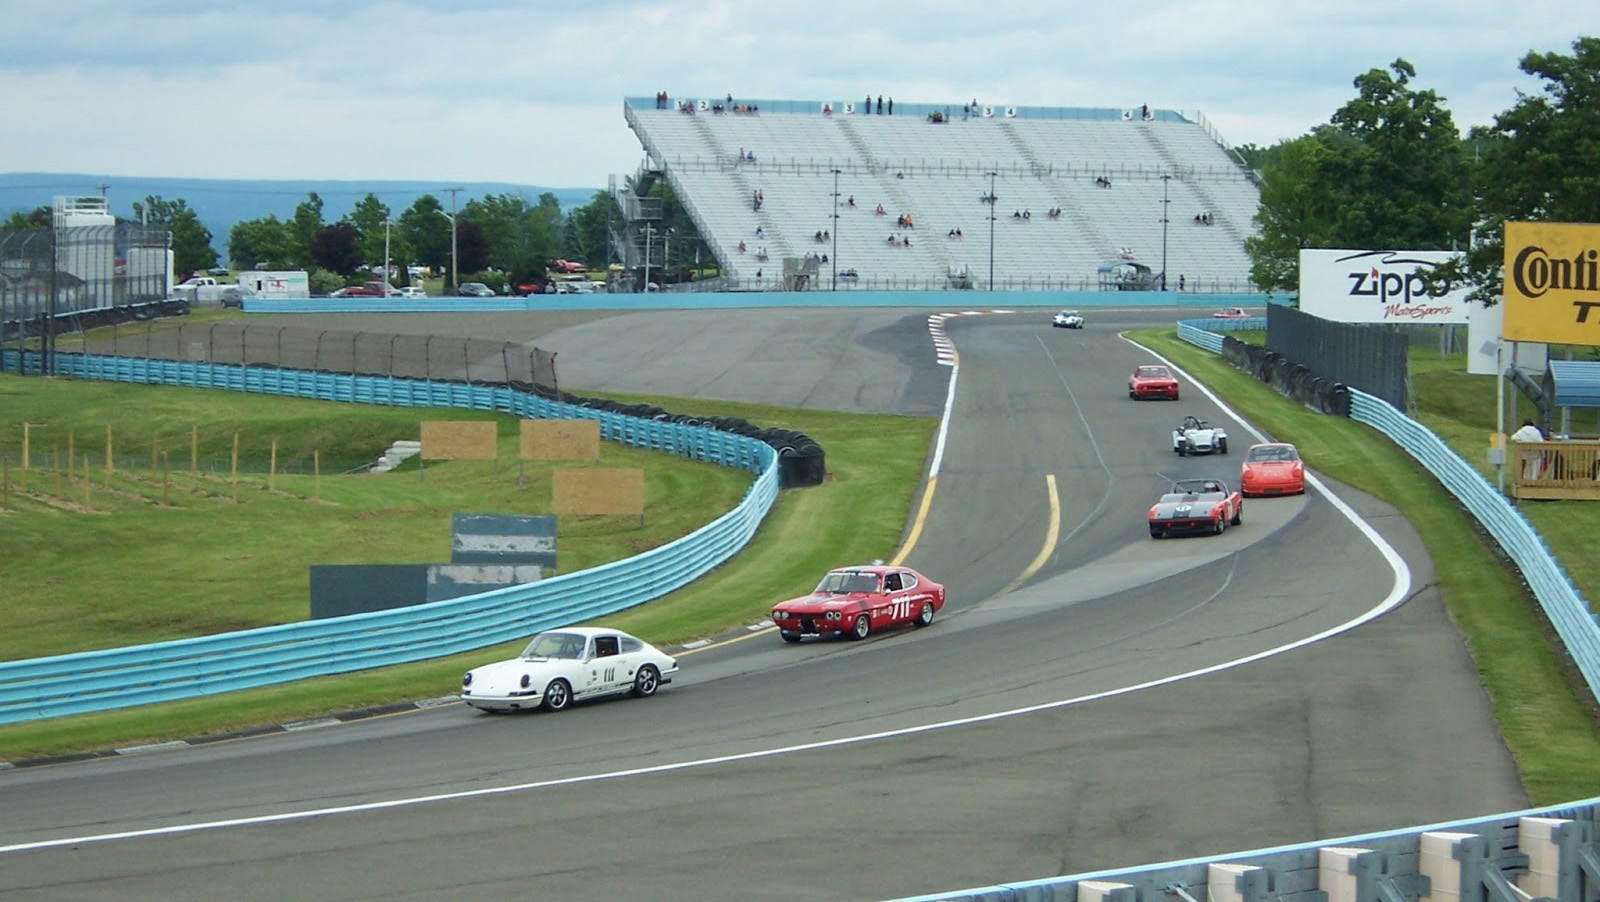 Watkins Glen Race Track >> Watkins Glen Race Track Pictures to Pin on Pinterest - PinsDaddy